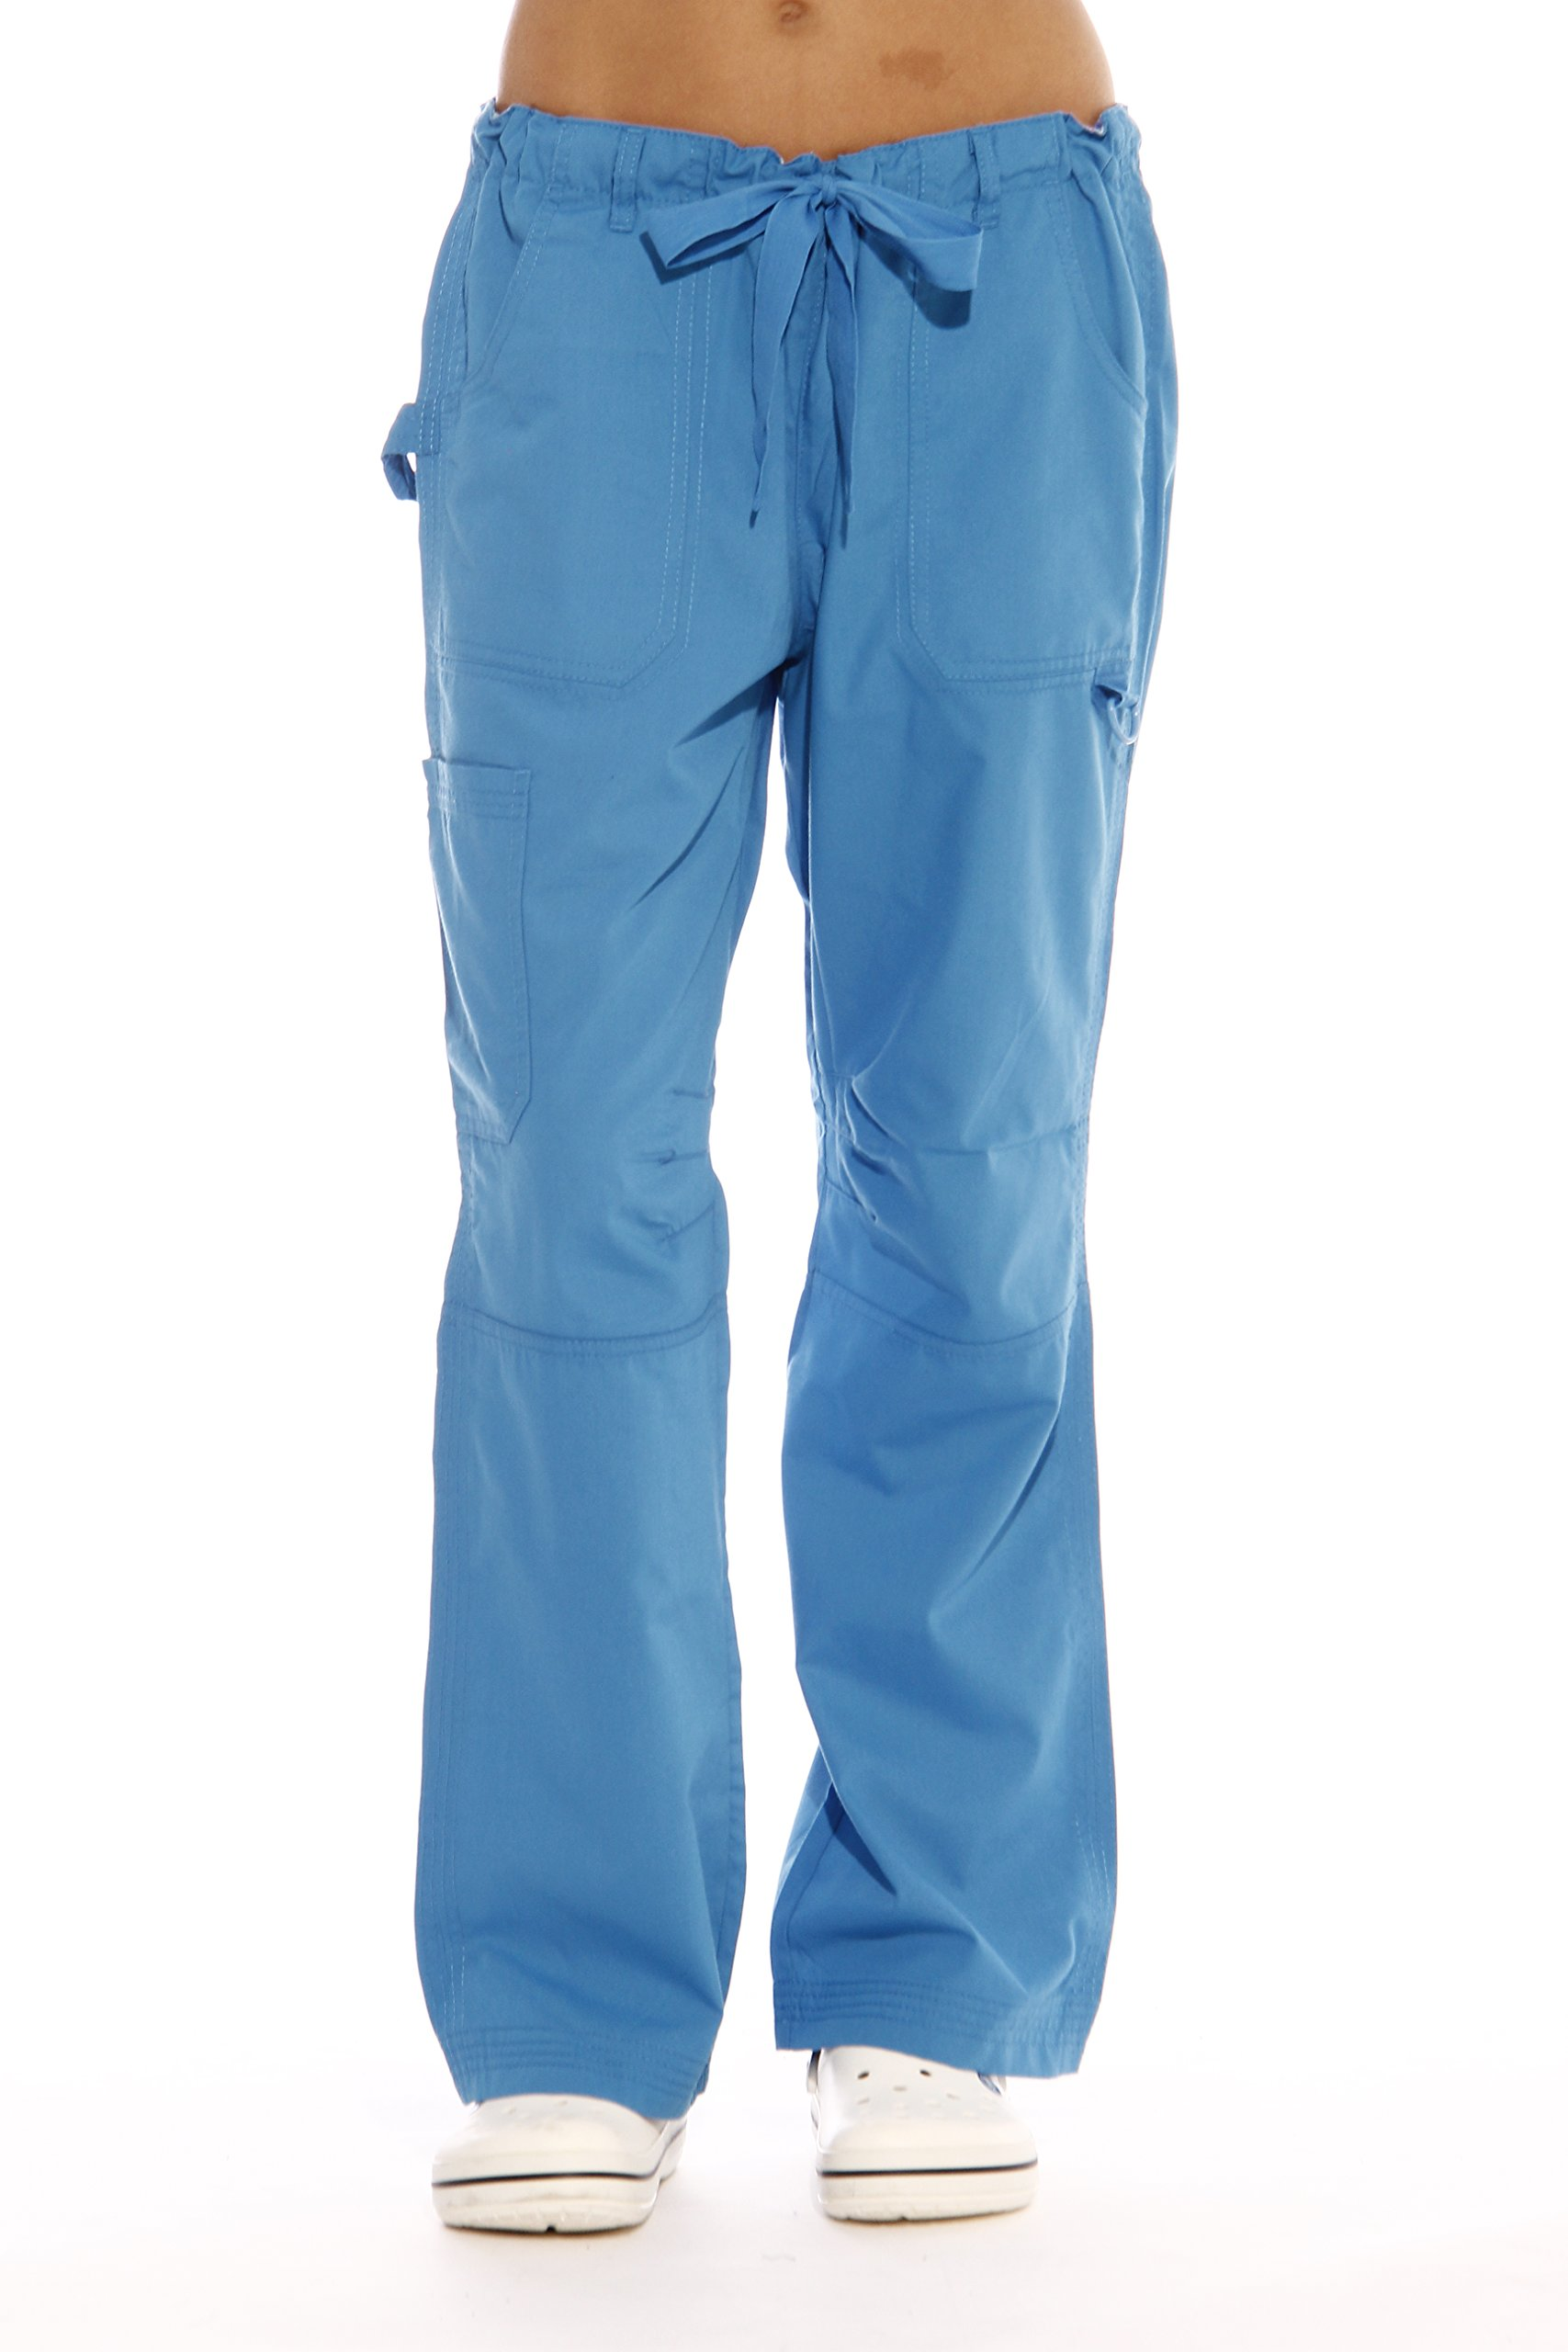 Just Love 24000PMALBLU-XL Women's Utility Scrub Pants Scrubs, Malibu Blue Utility, X-Large